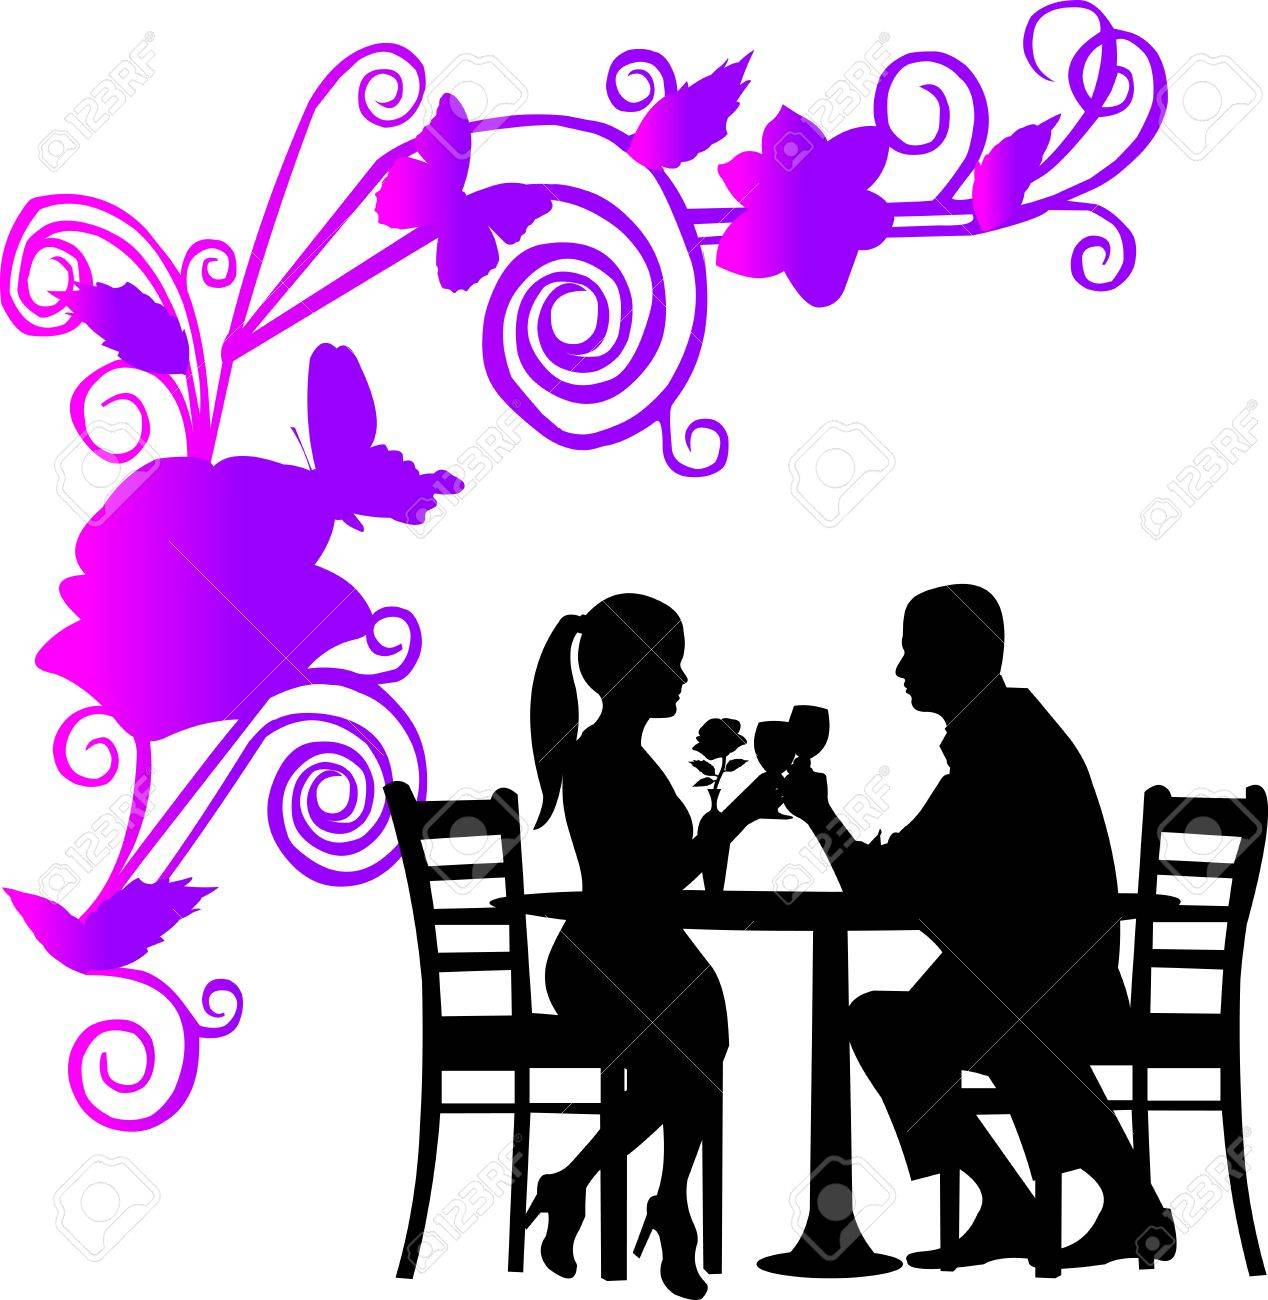 Restaurant Table Setting Clipart - Restaurant table background with flowers and butterflies and romantic couple in restaurant toast with glass